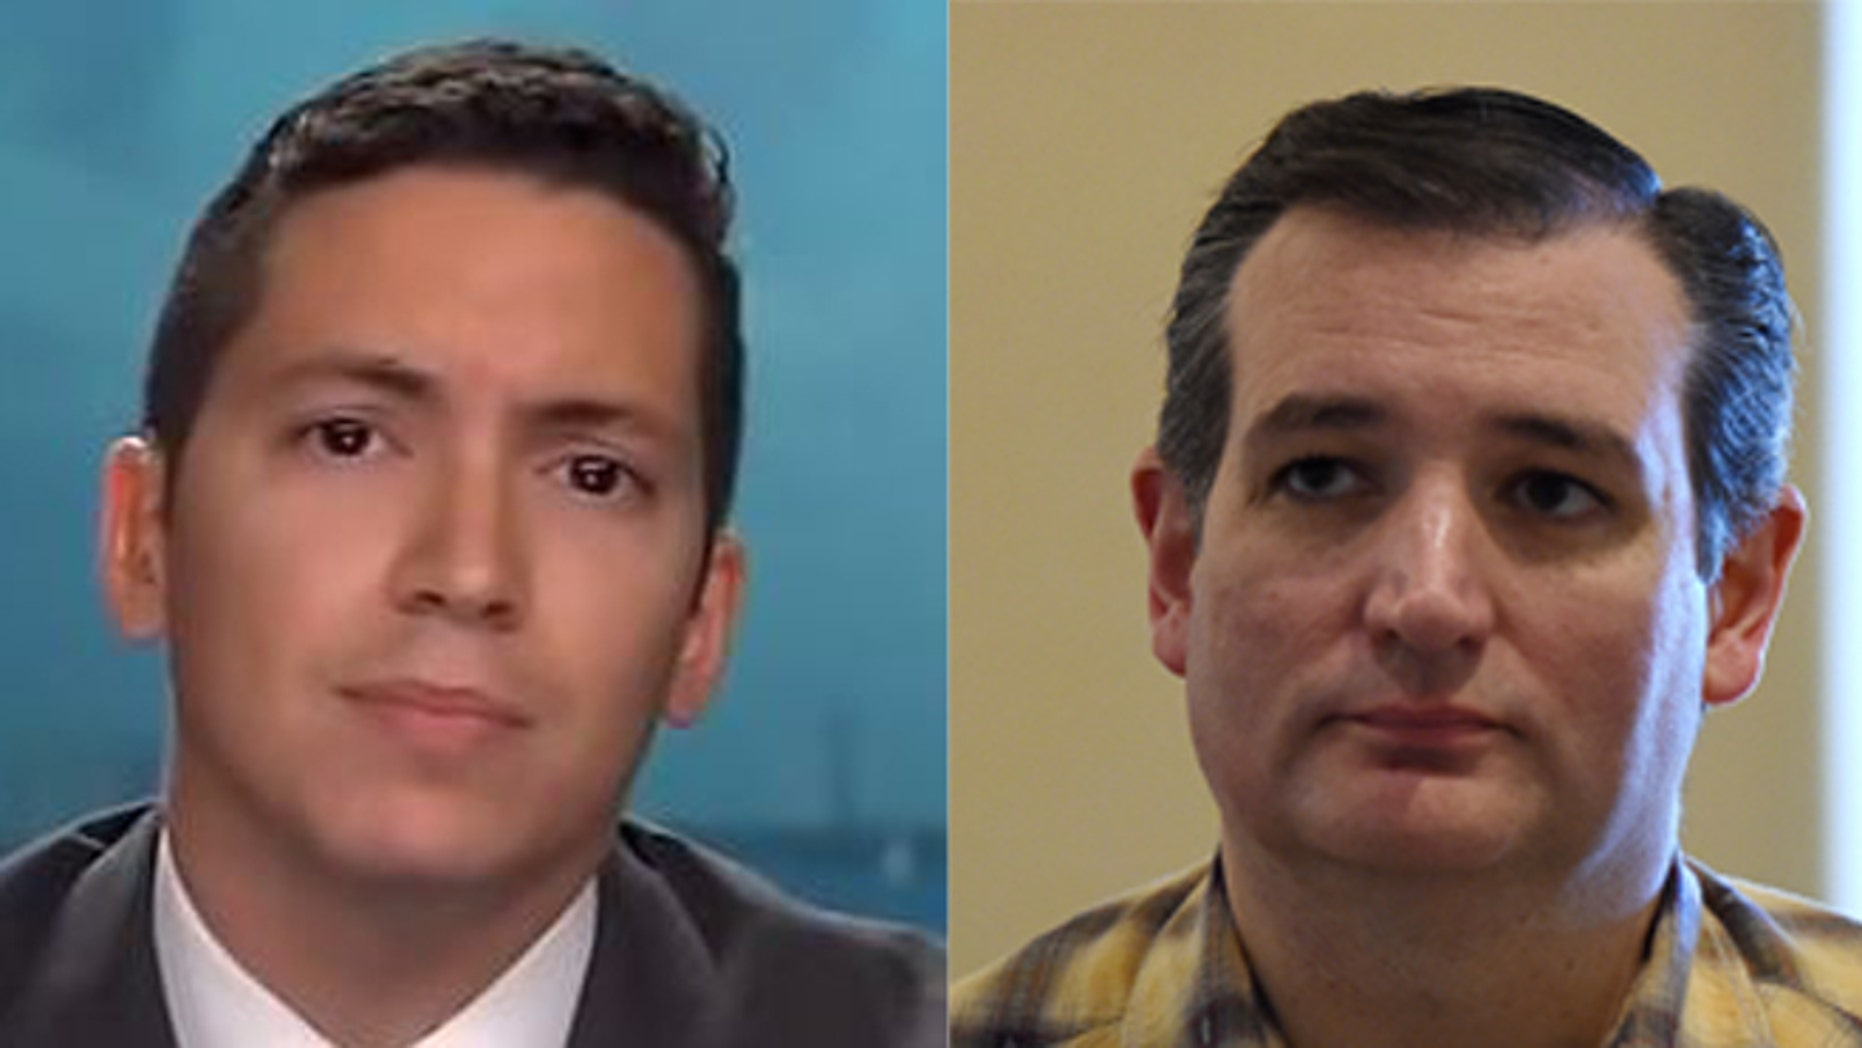 This is a photo composite of Cruz campaign Miami-Dade chairman Manny Roman (L) on Fox News and Republican presidential candidate Ted Cruz (R).